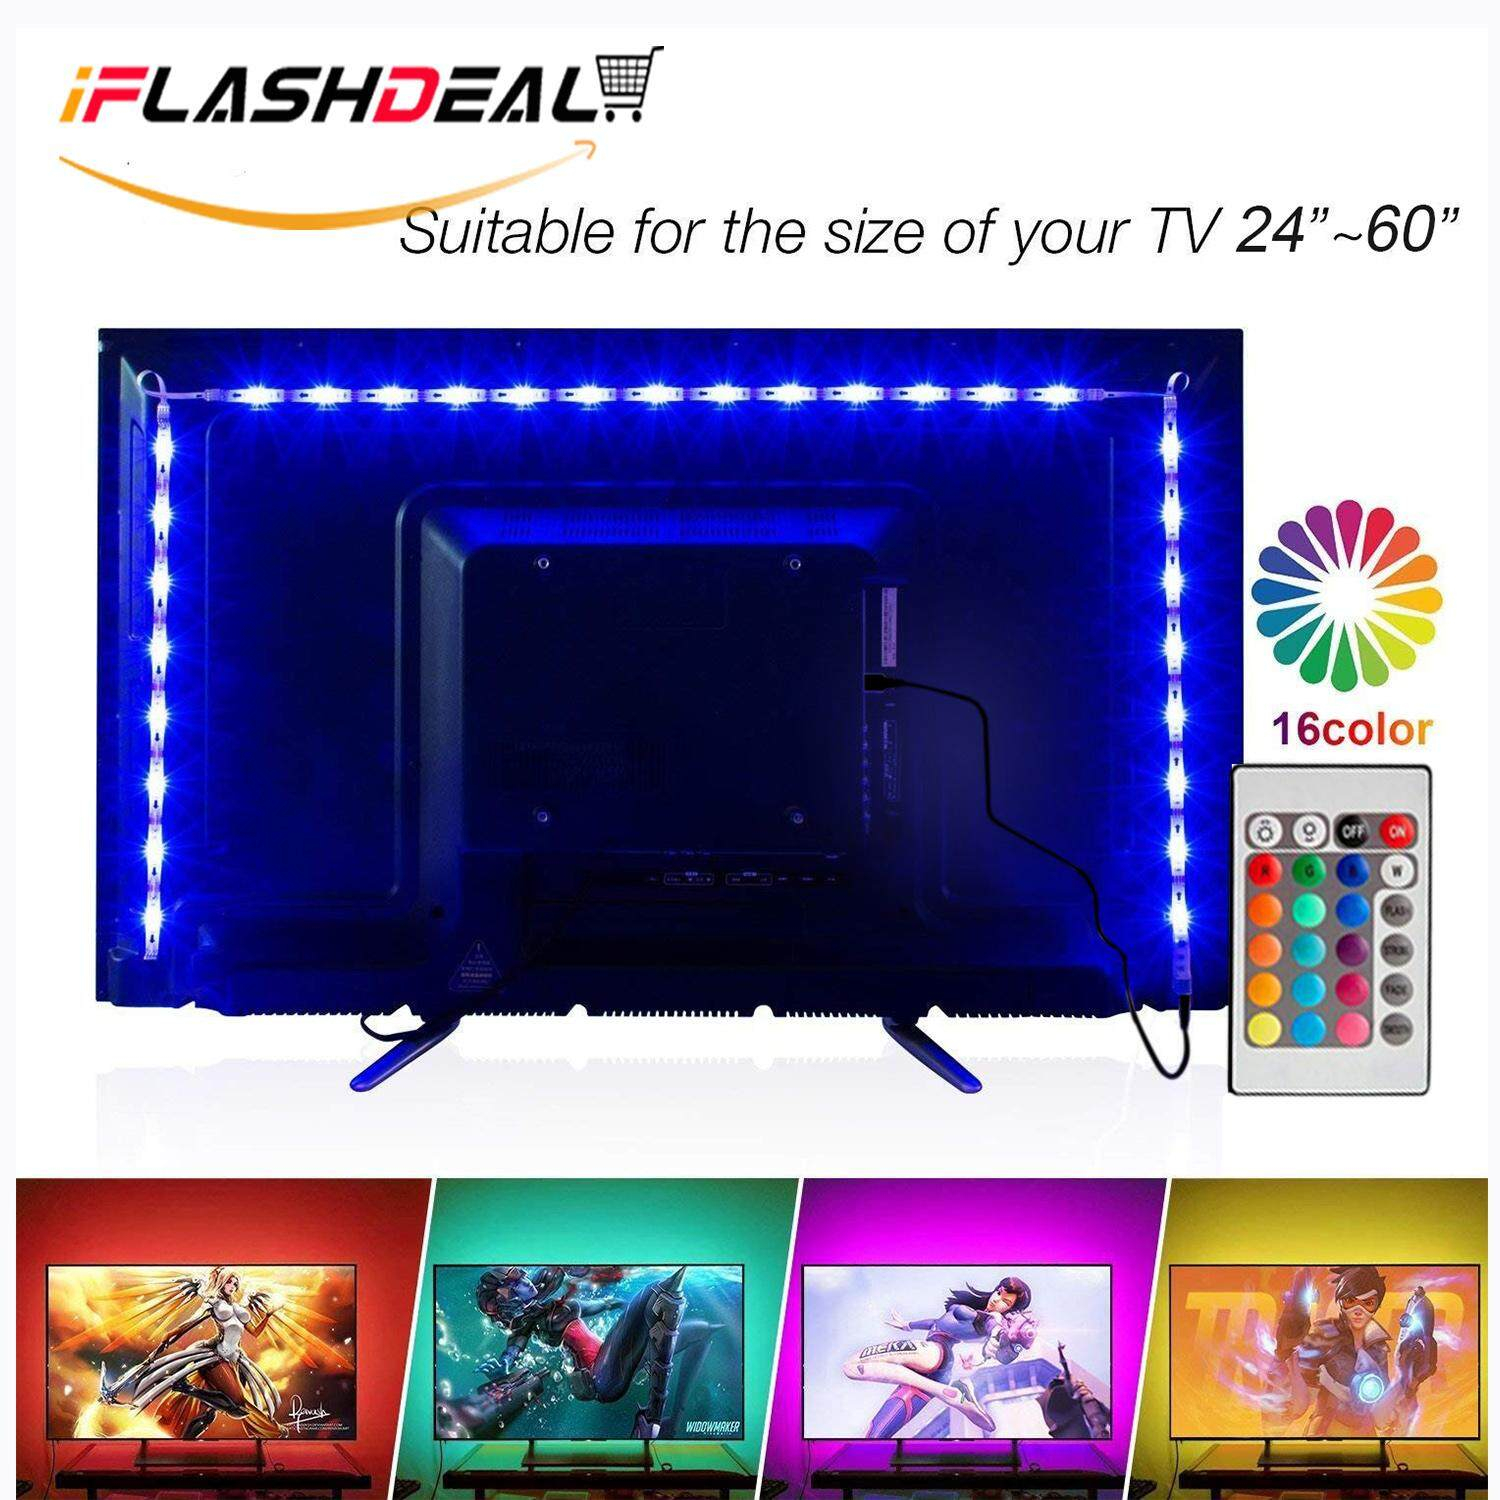 Iflashdeal Usb Led Strip Light Tv Background Lighting Rgb Waterproof Backlight Smd 5050 2m 24keys Remote Controller By Iflashdeal.